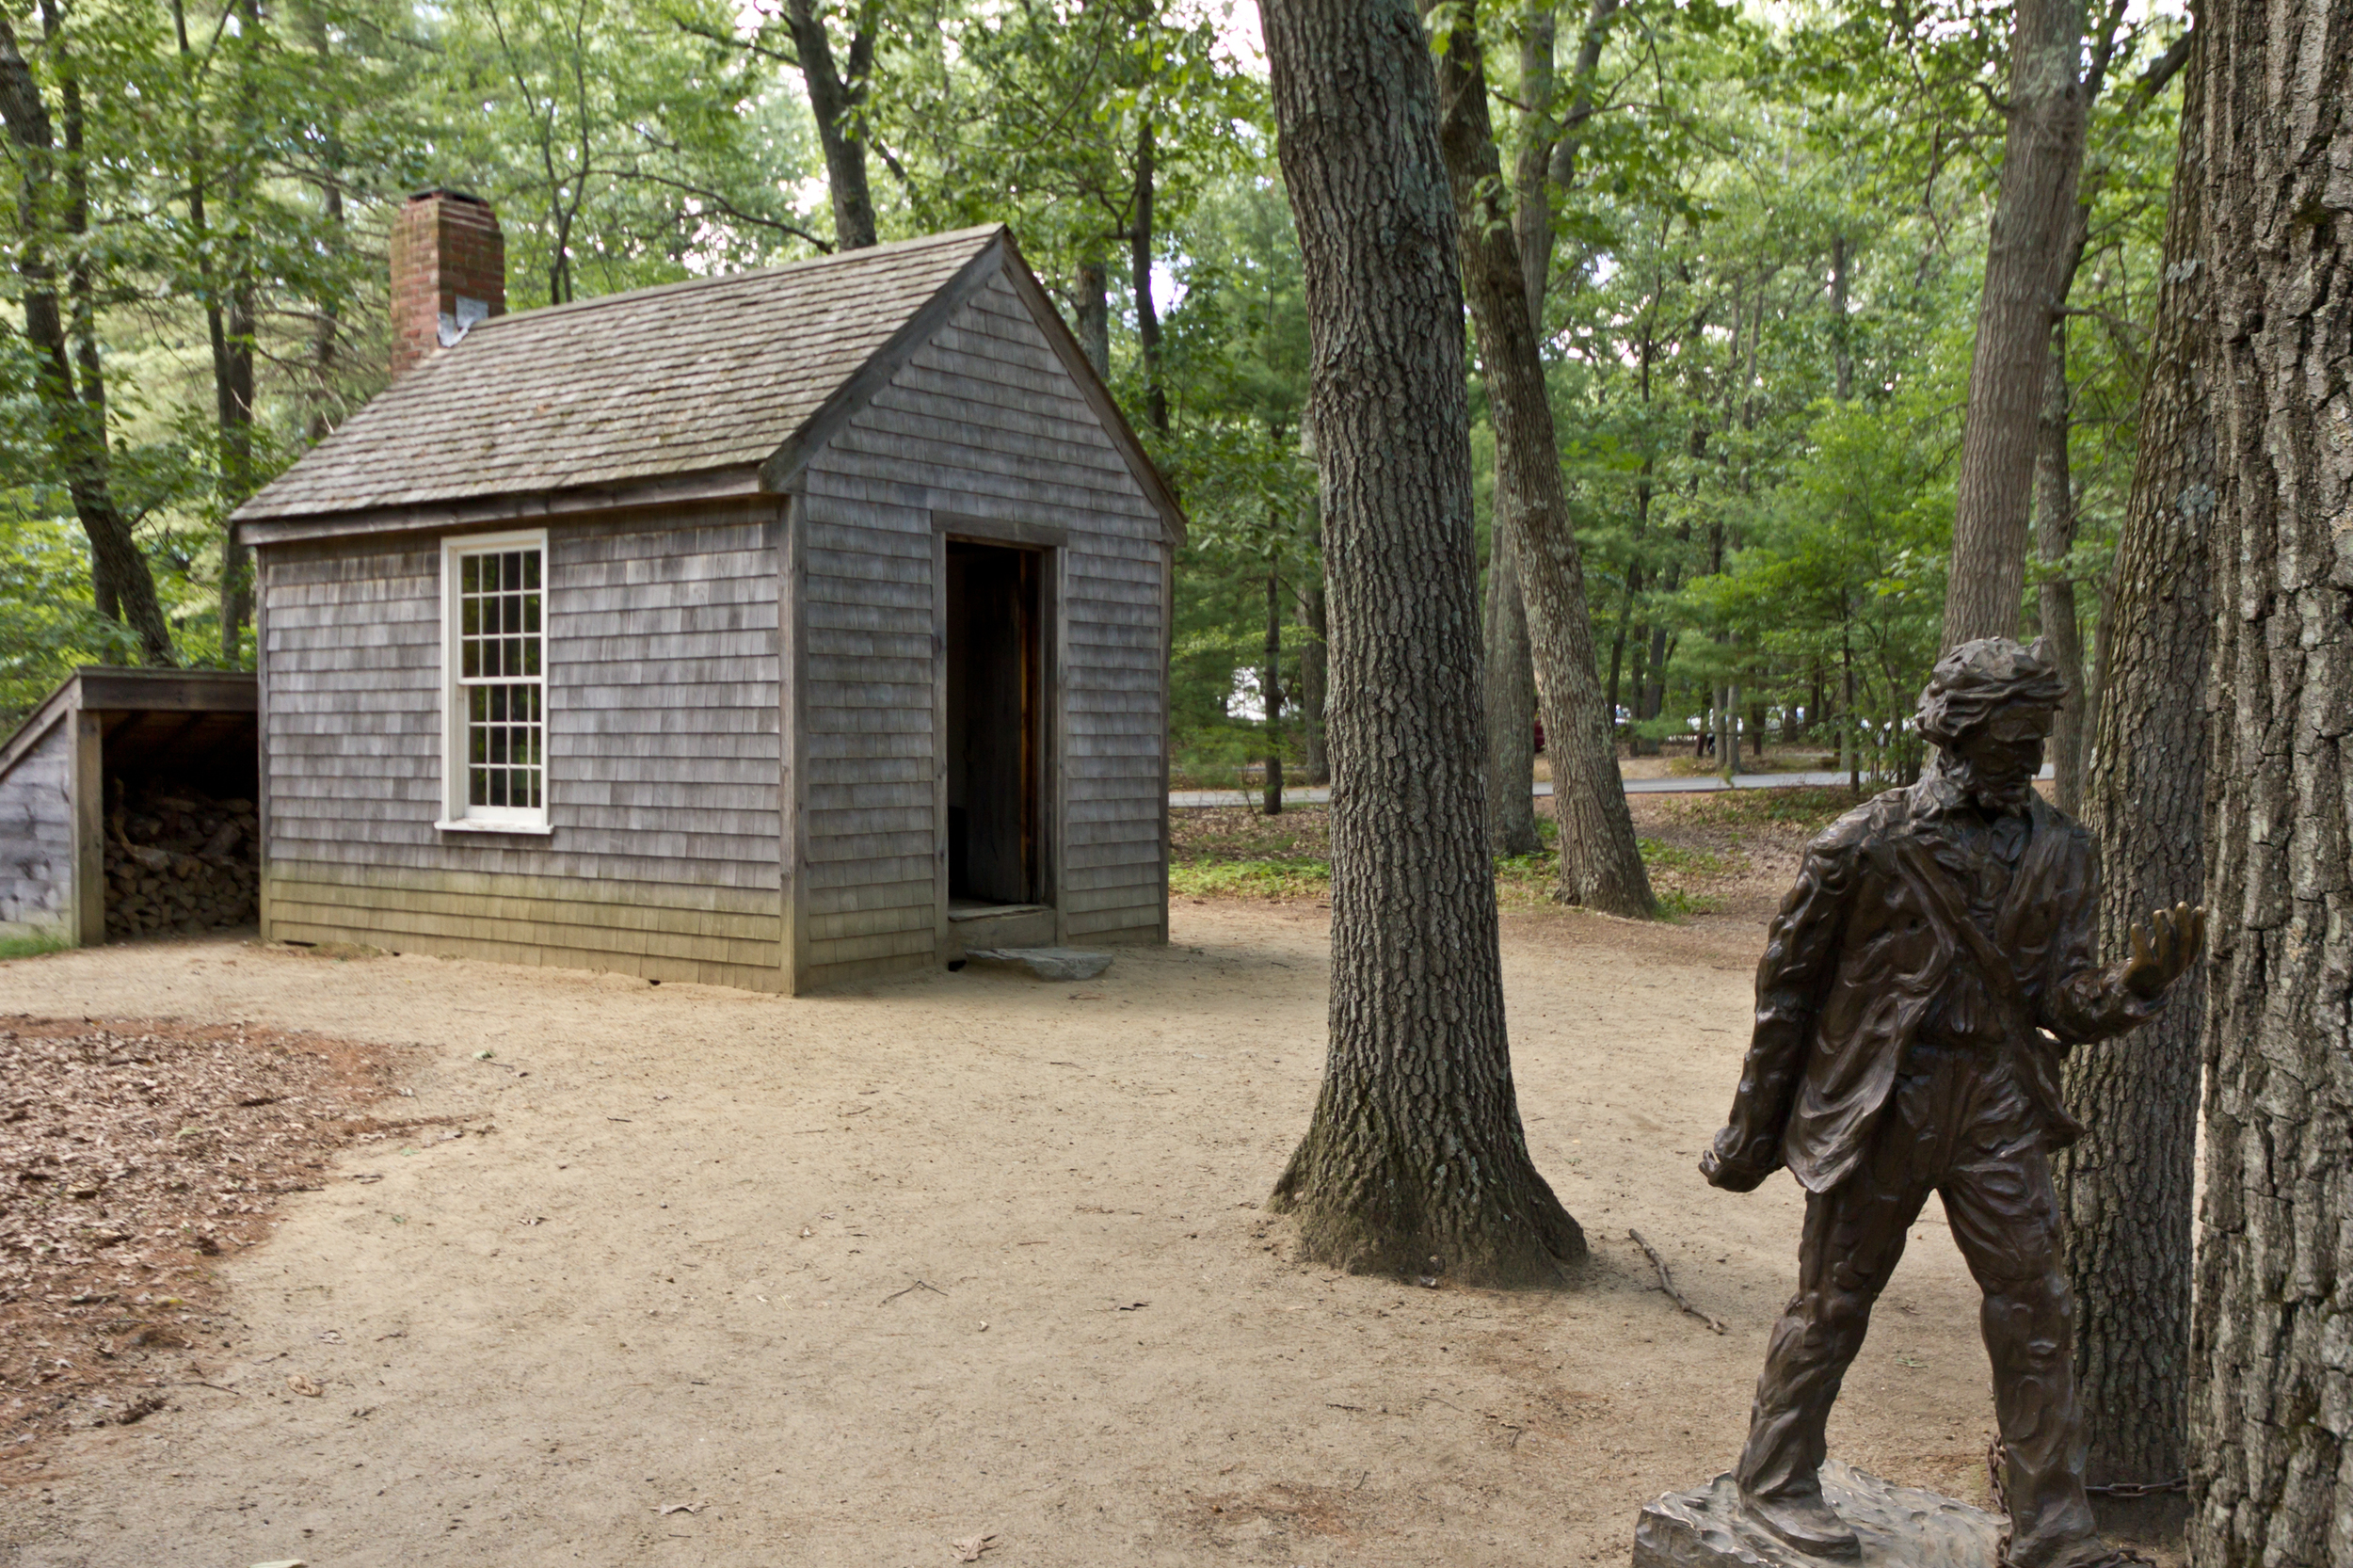 Replica_of_Thoreau's_cabin_near_Walden_Pond_and_his_statue.jpg